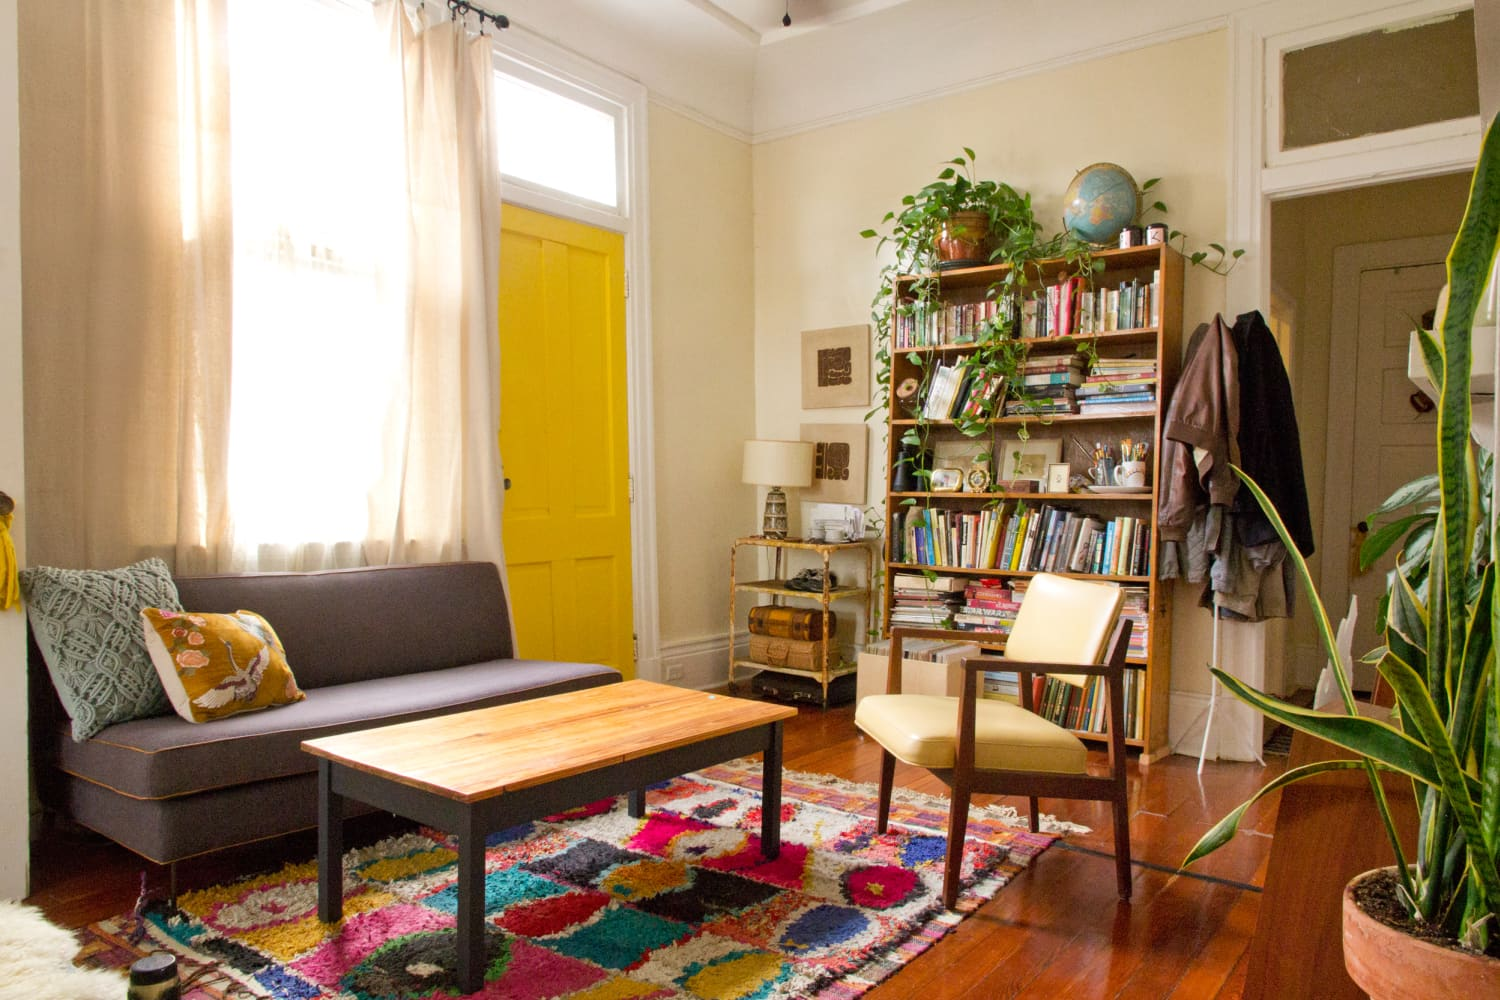 This $22 Amazon Buy Can Completely Transform a Room